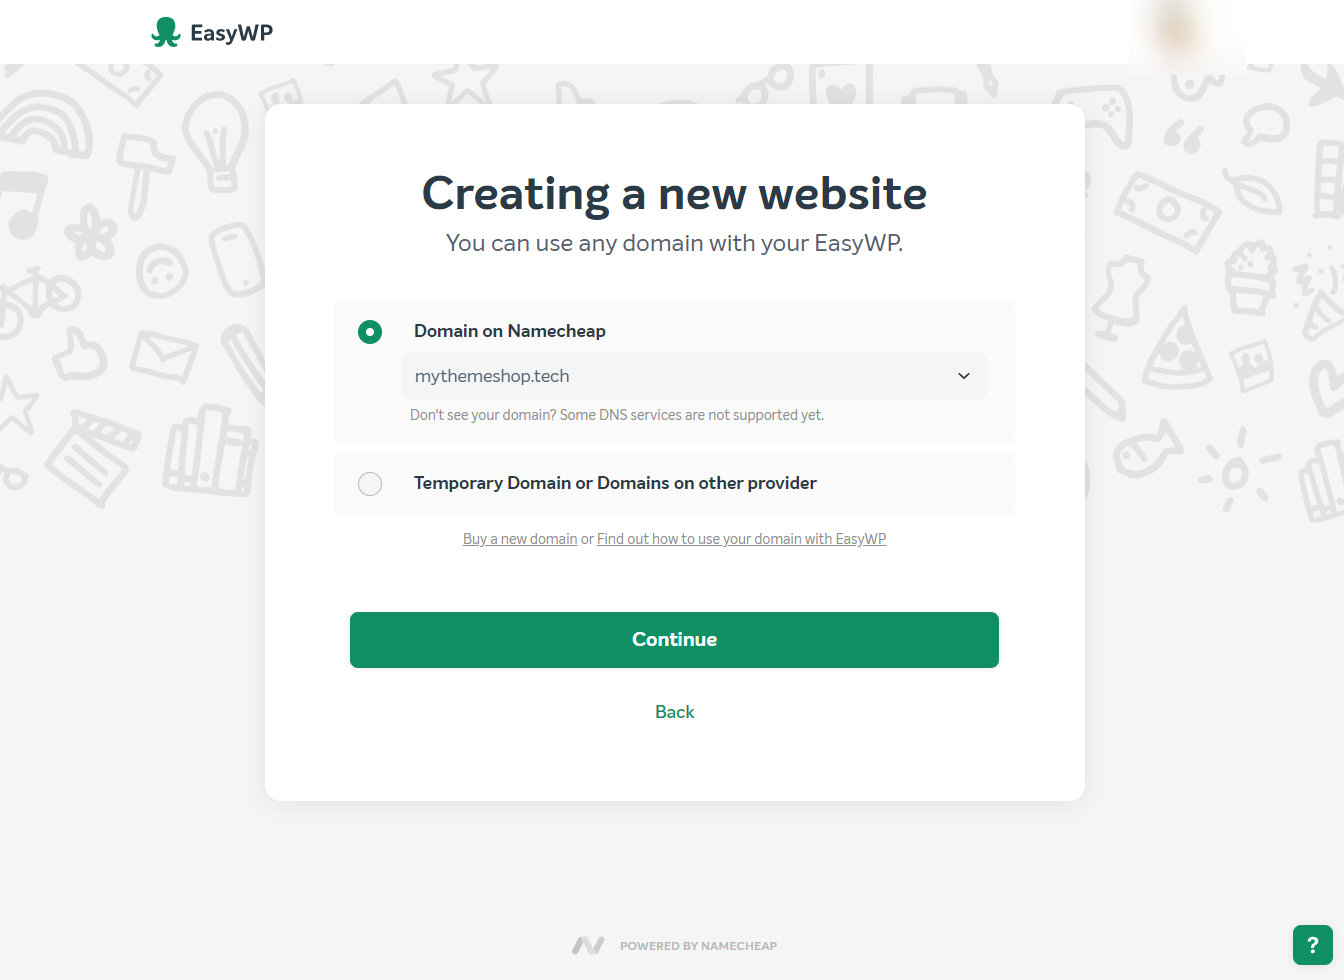 domain selection screen on easywp